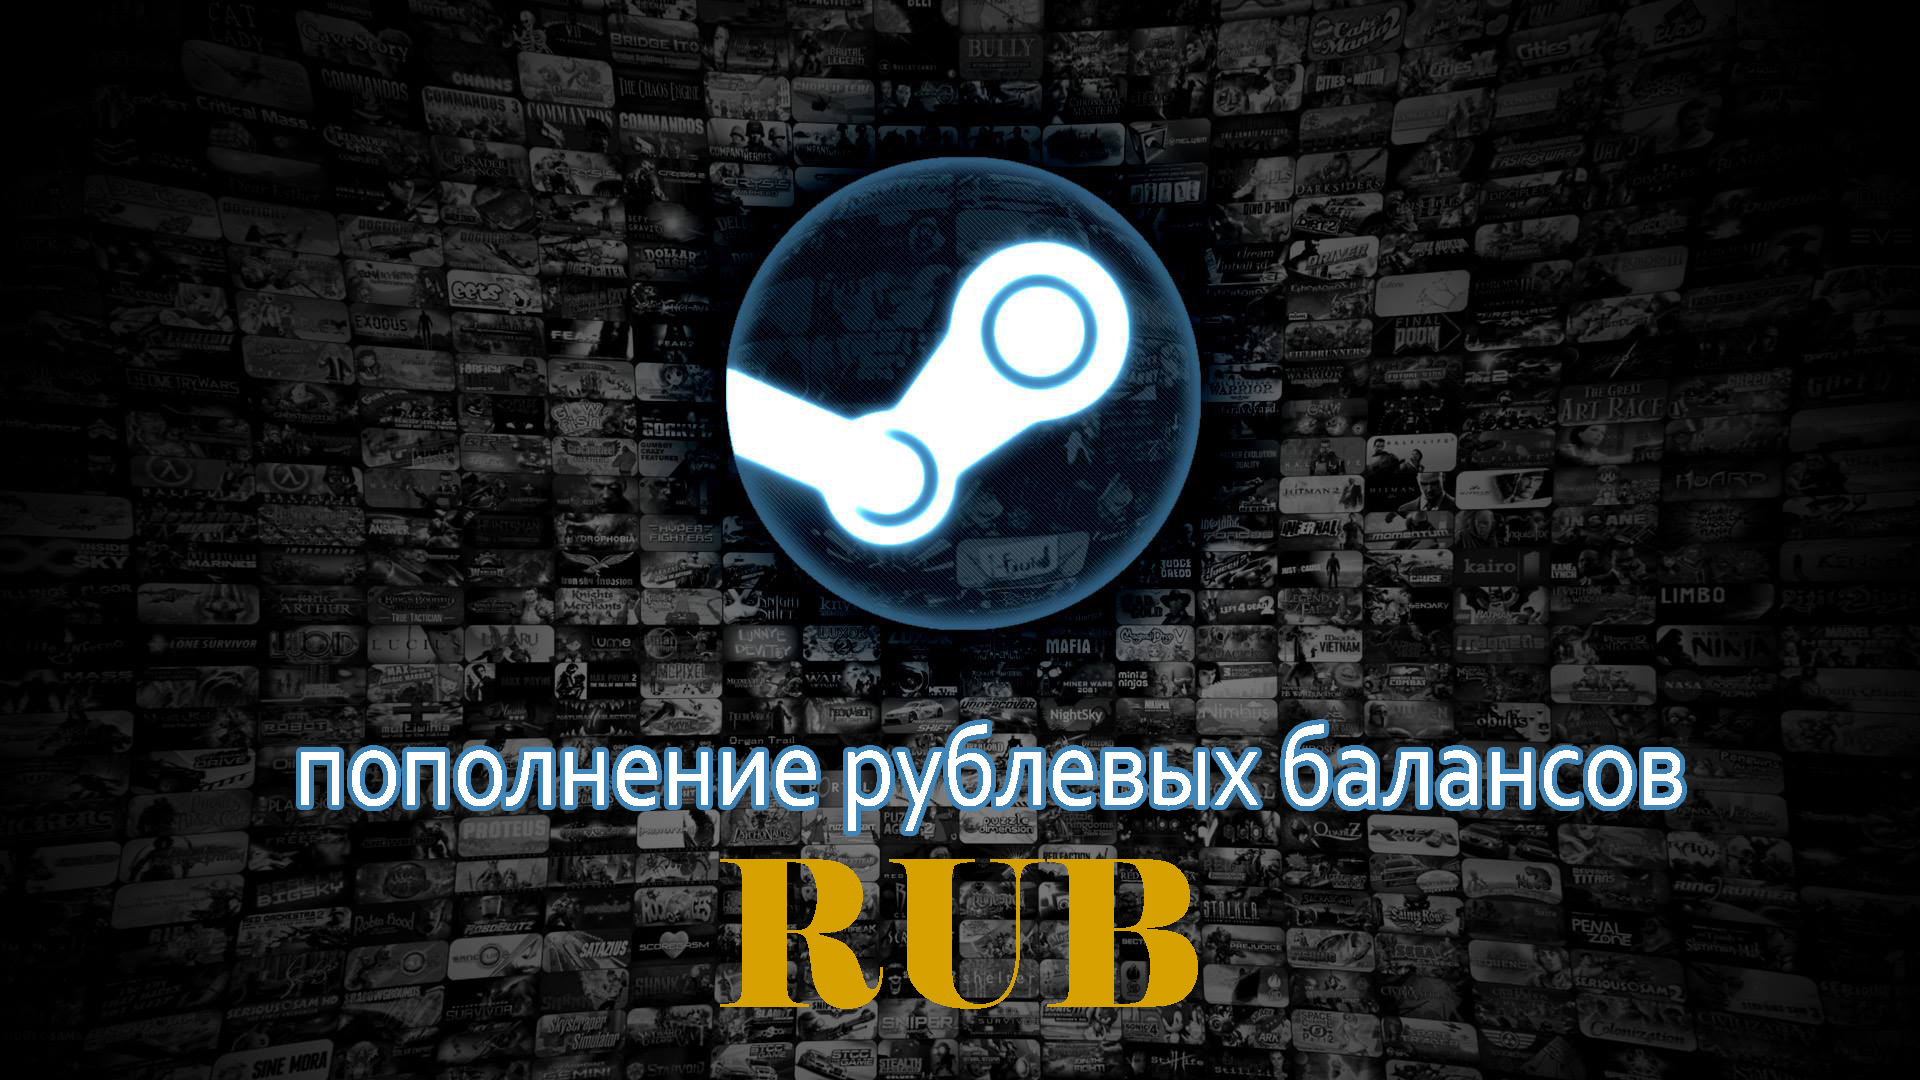 Steam Wallet (RU)  top-up steam rubles wallet balance